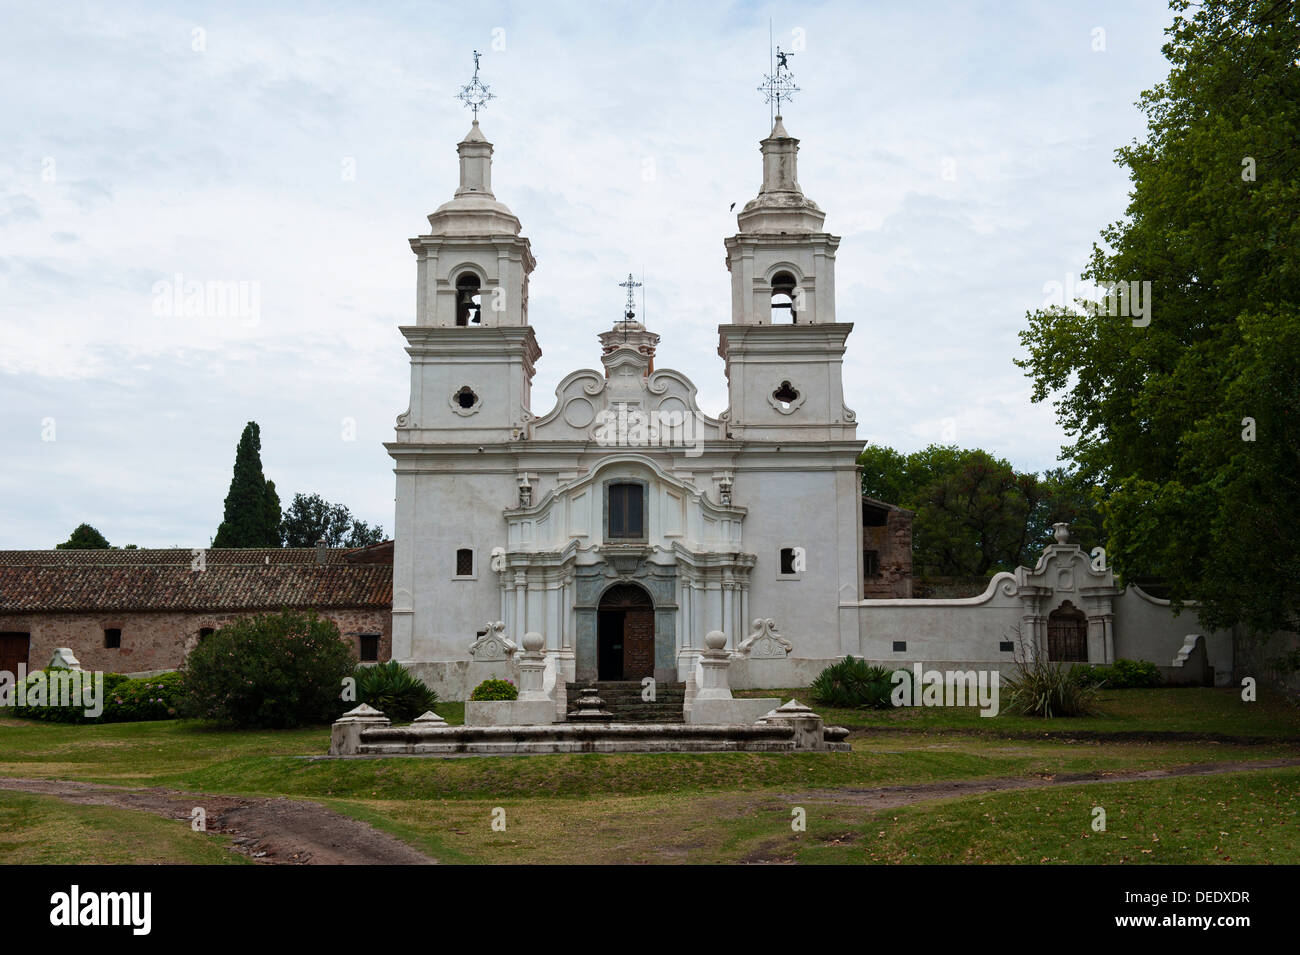 Jesuit Mission Santa Catalina, UNESCO World Heritage Site, Argentina, South America - Stock Image